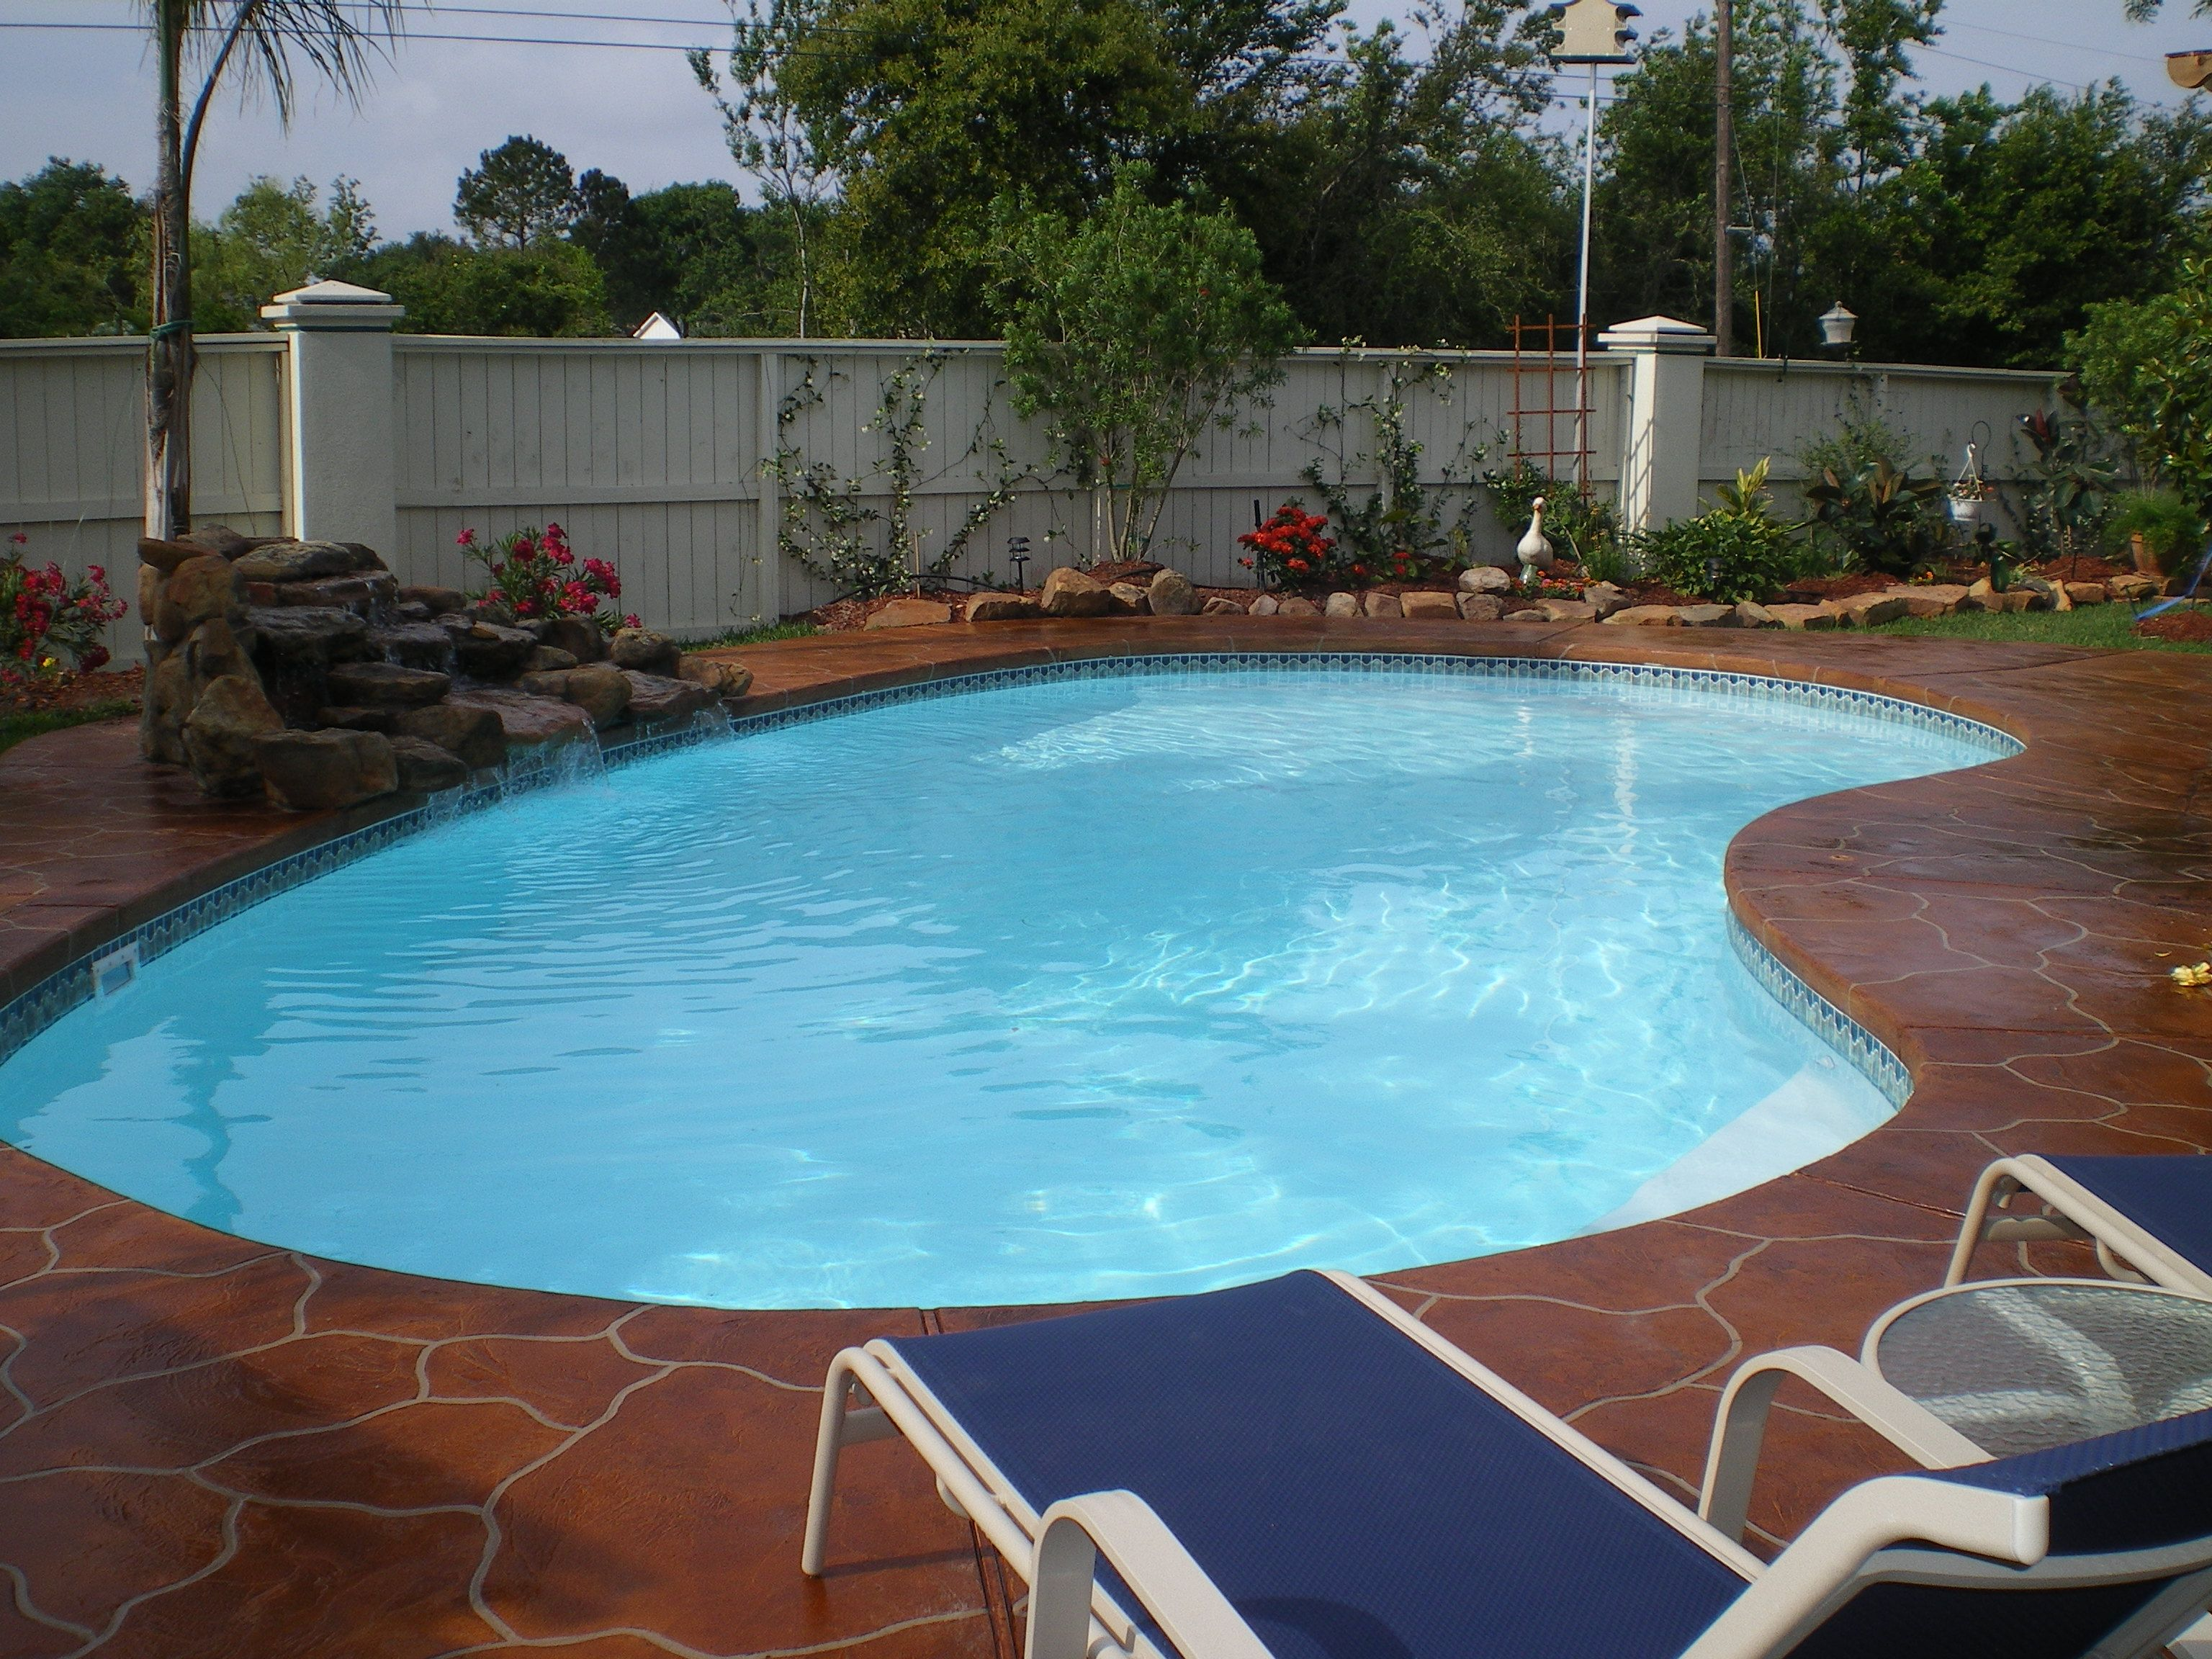 Small kidney shaped fiberglass pool with beautiful